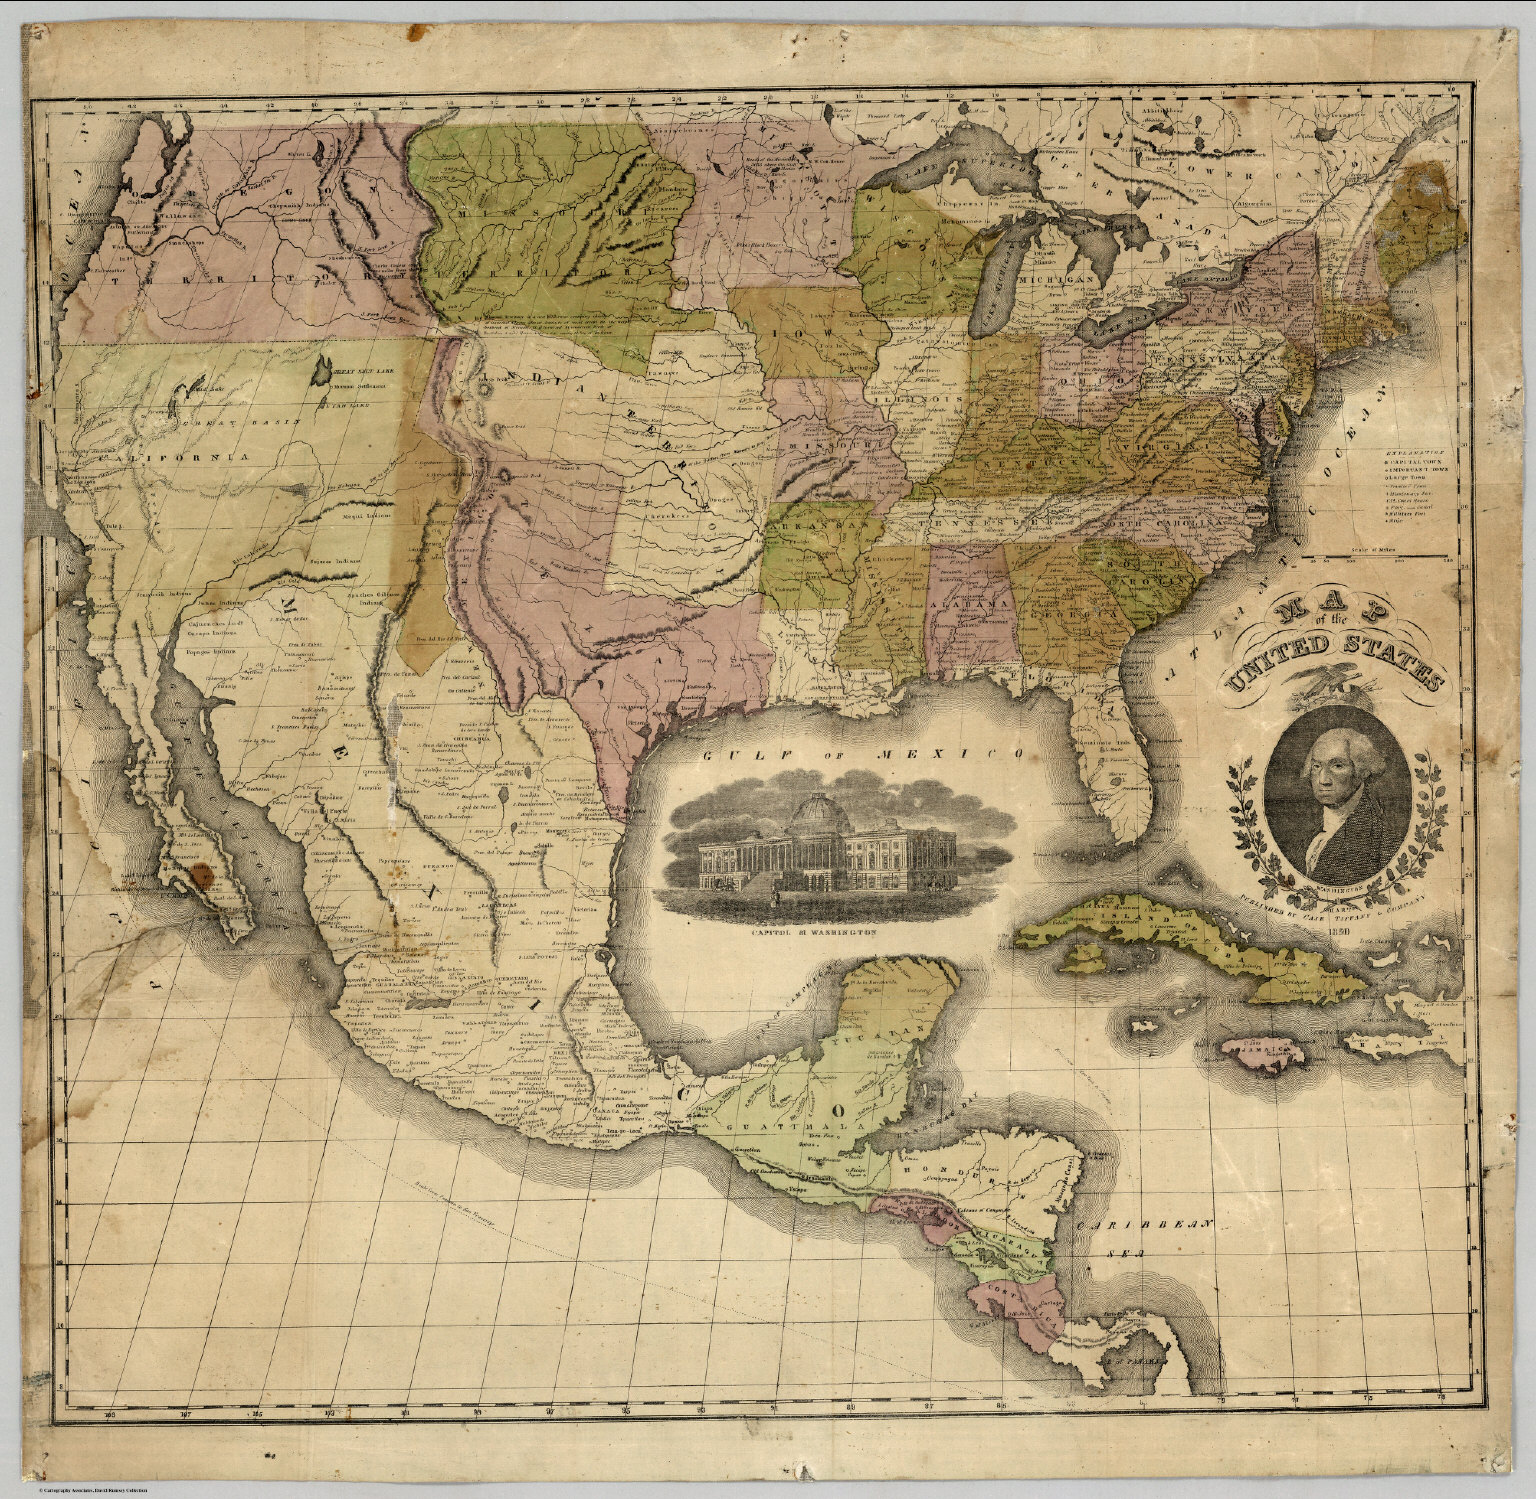 Map Of The United States 1850 David Rumsey Historical Map Collection